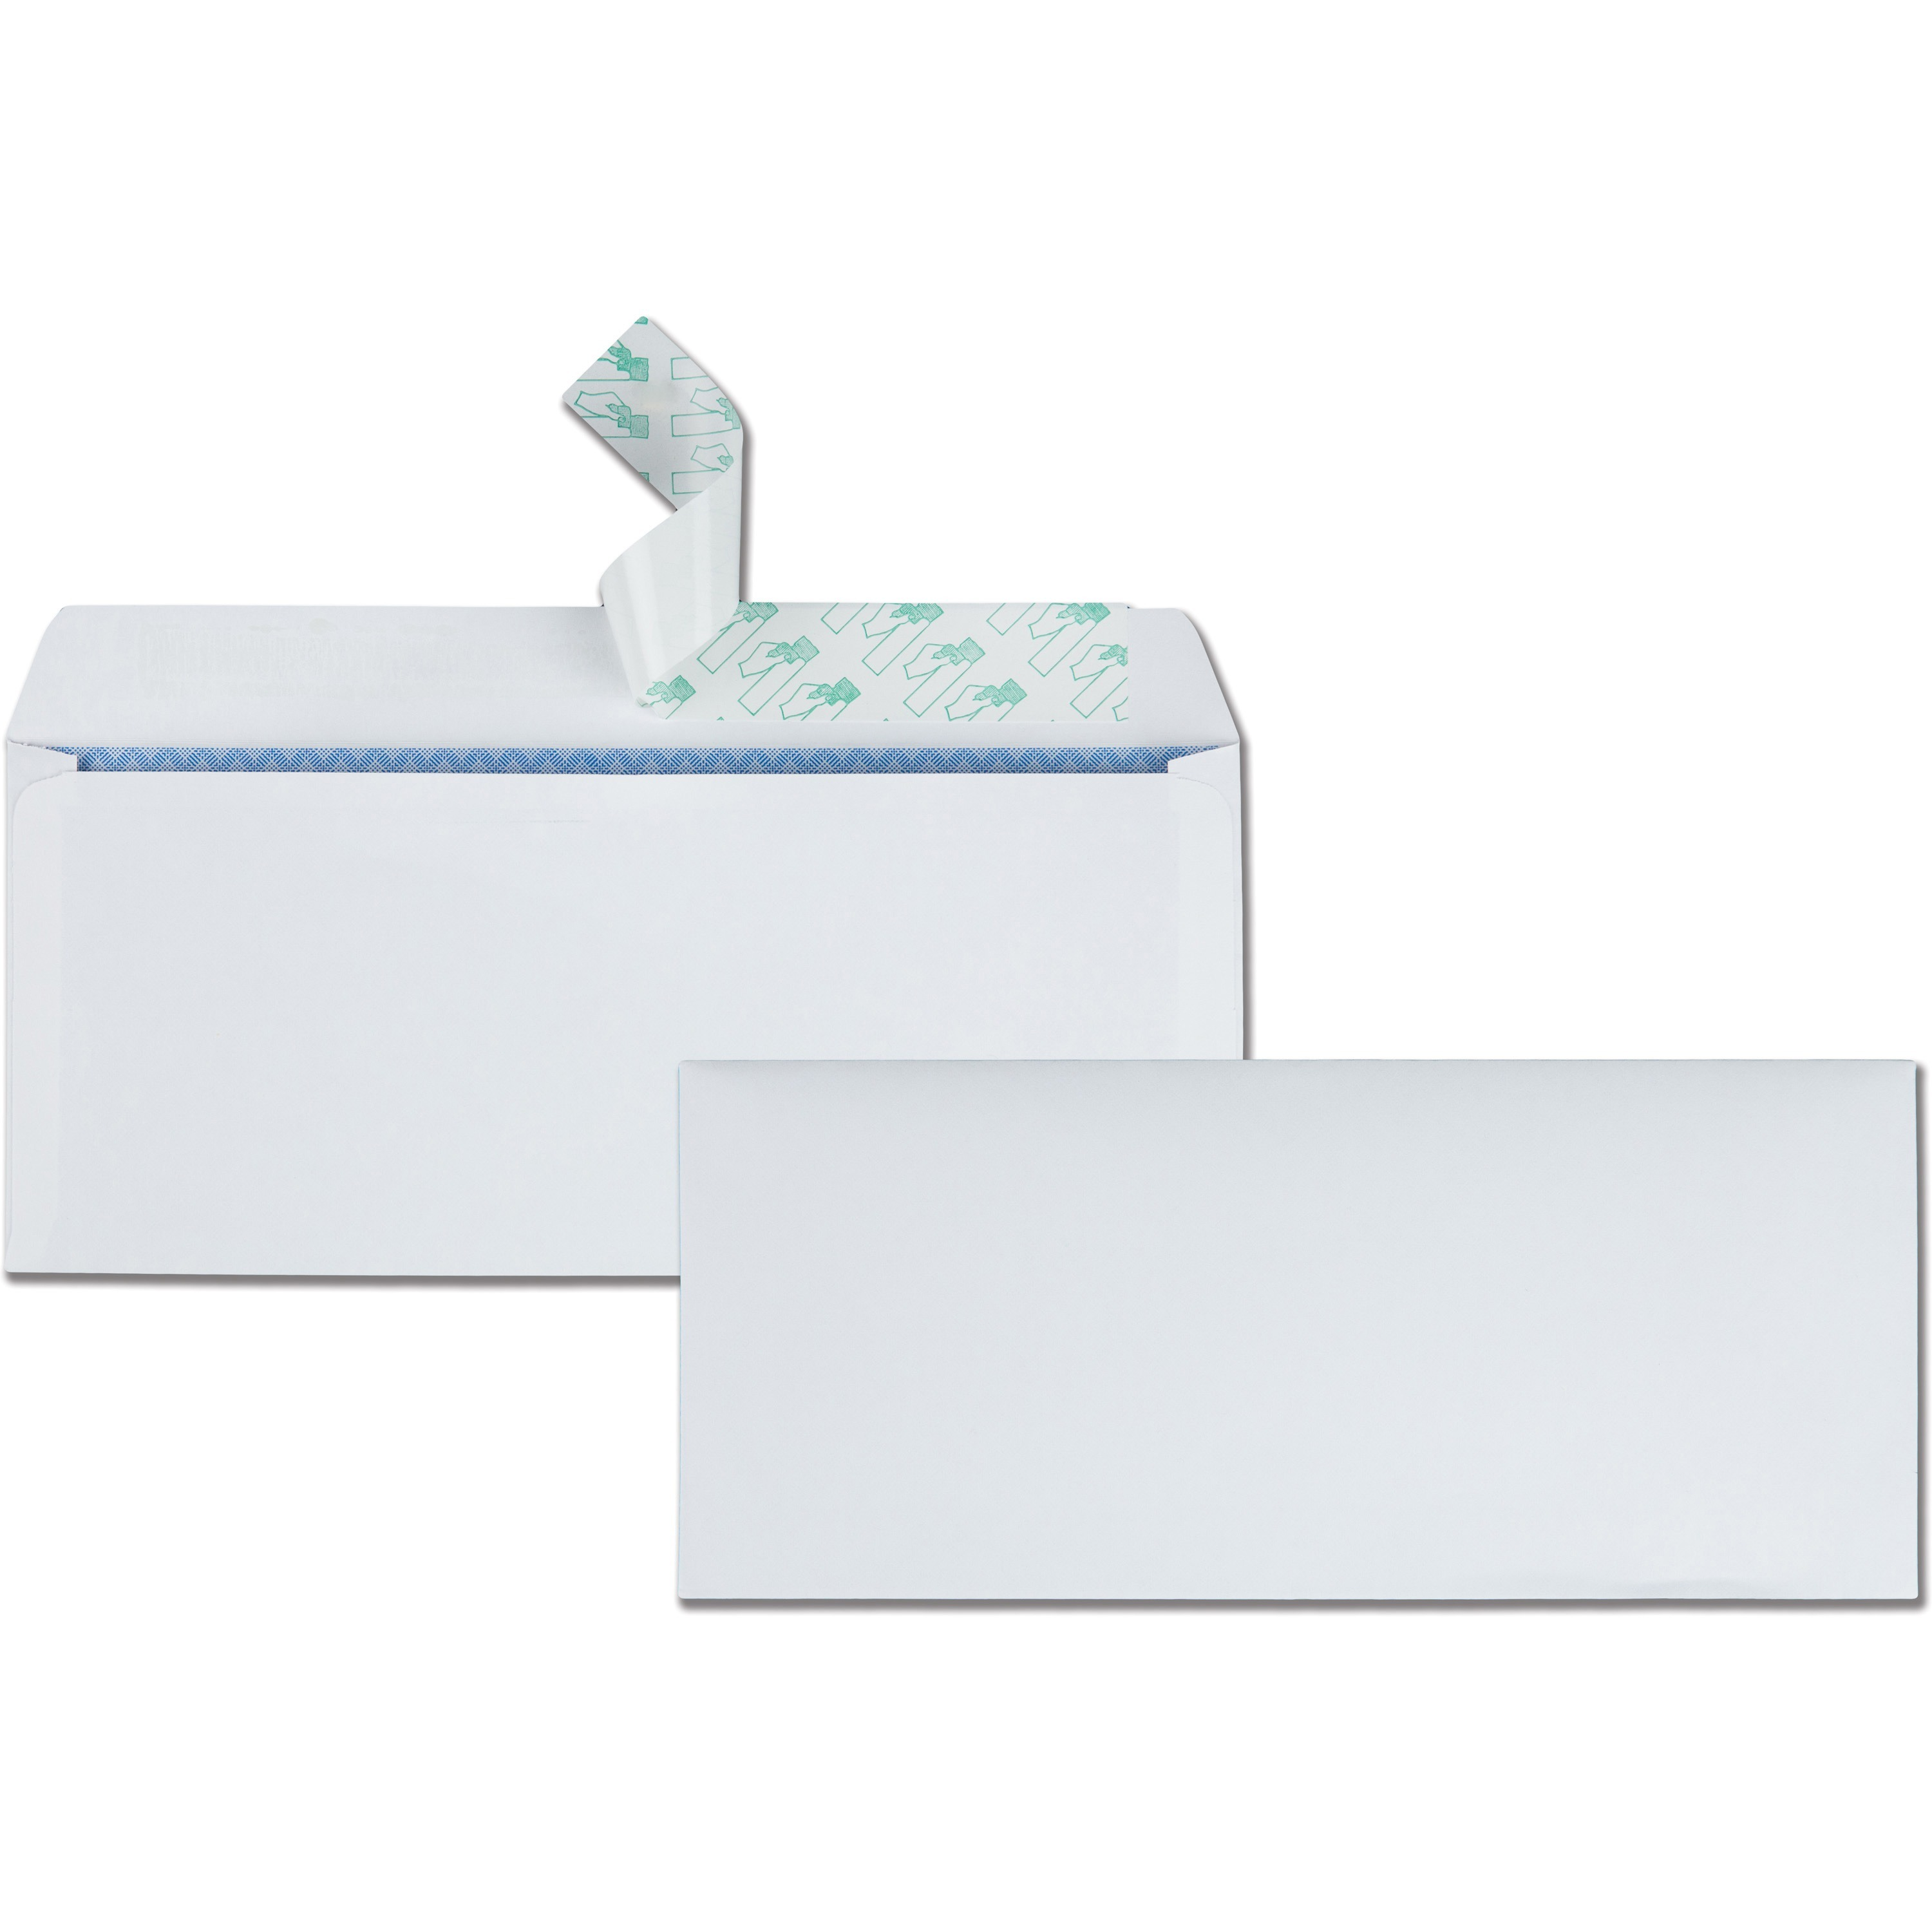 Redi Strip Security Tinted Envelope, #10, 4 1/8 x 9 1/2, White, 500/Box